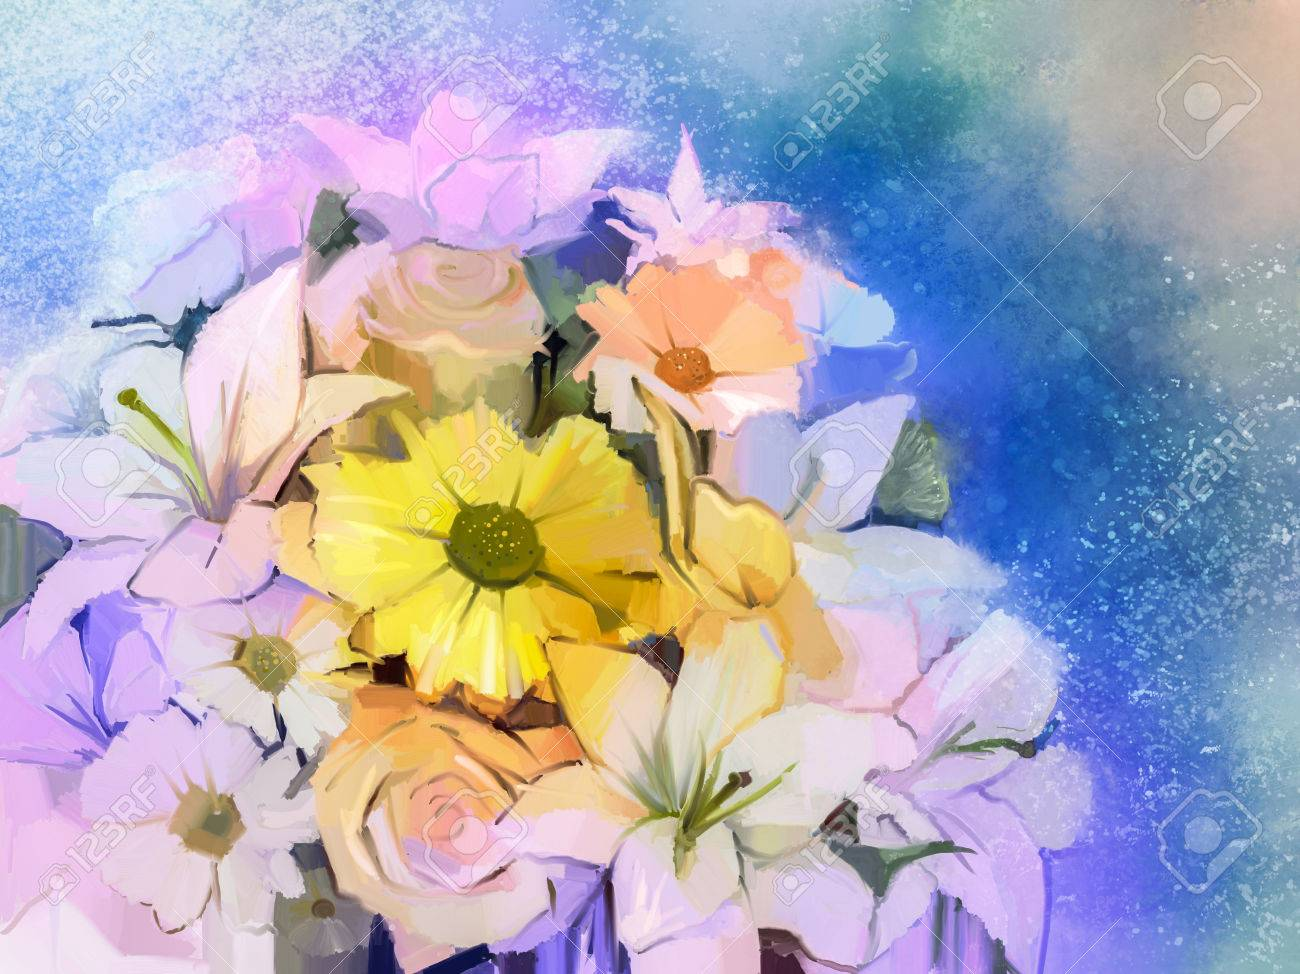 Oil painting soft colorful bouquet of rose daisy lily and gerbera banco de imagens oil painting soft colorful bouquet of rose daisy lily and gerbera flower hand painted floral still life of white color flowers with izmirmasajfo